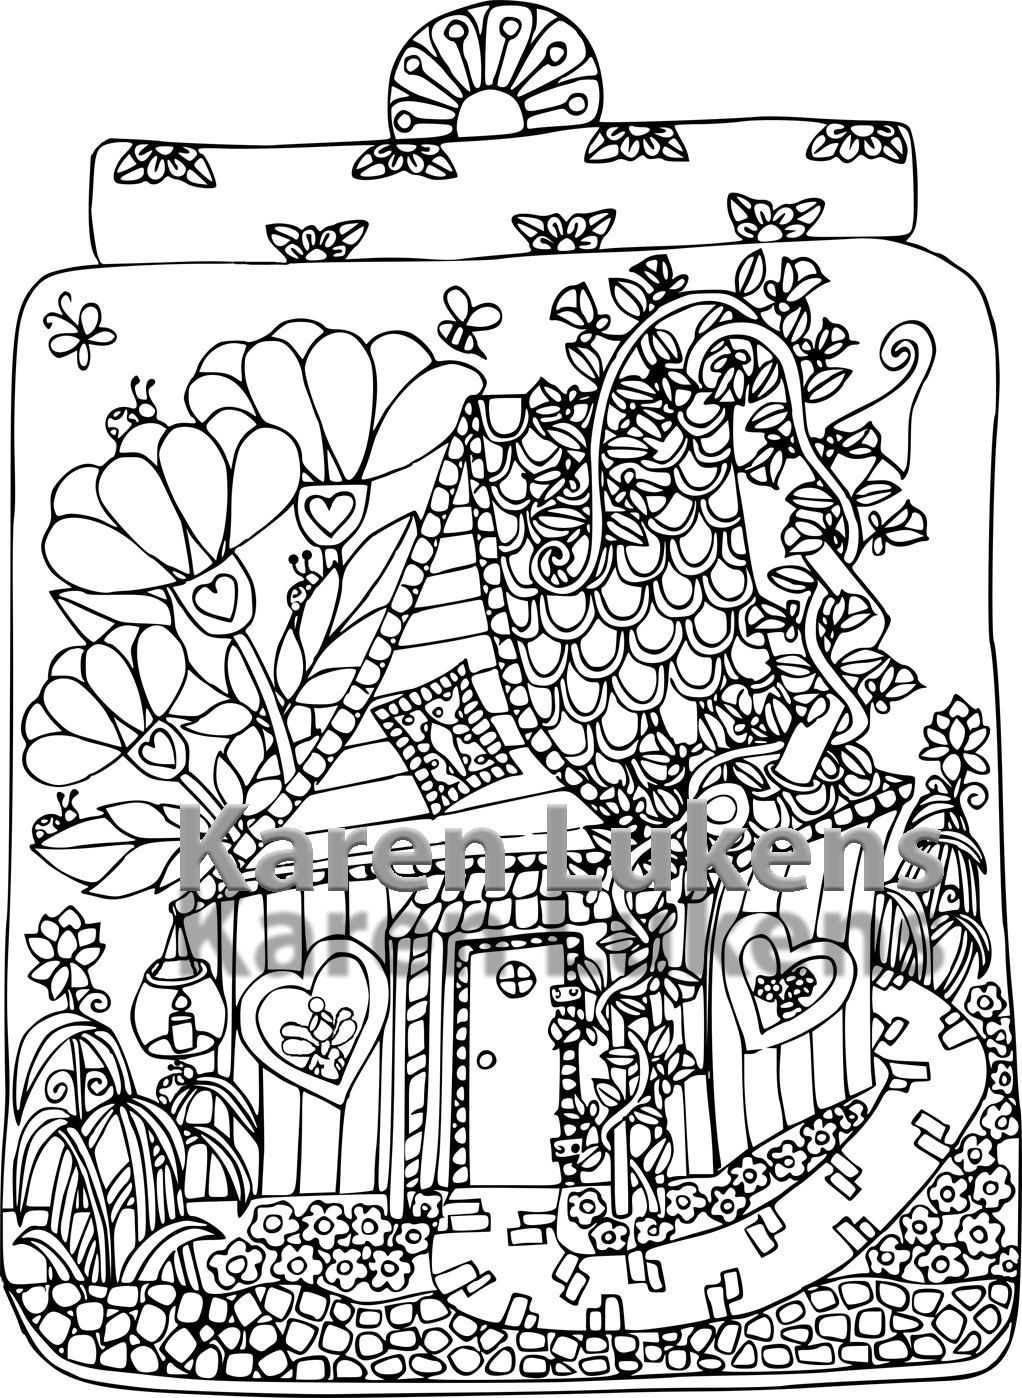 Bildergebnis für printable fairy house coloring pages